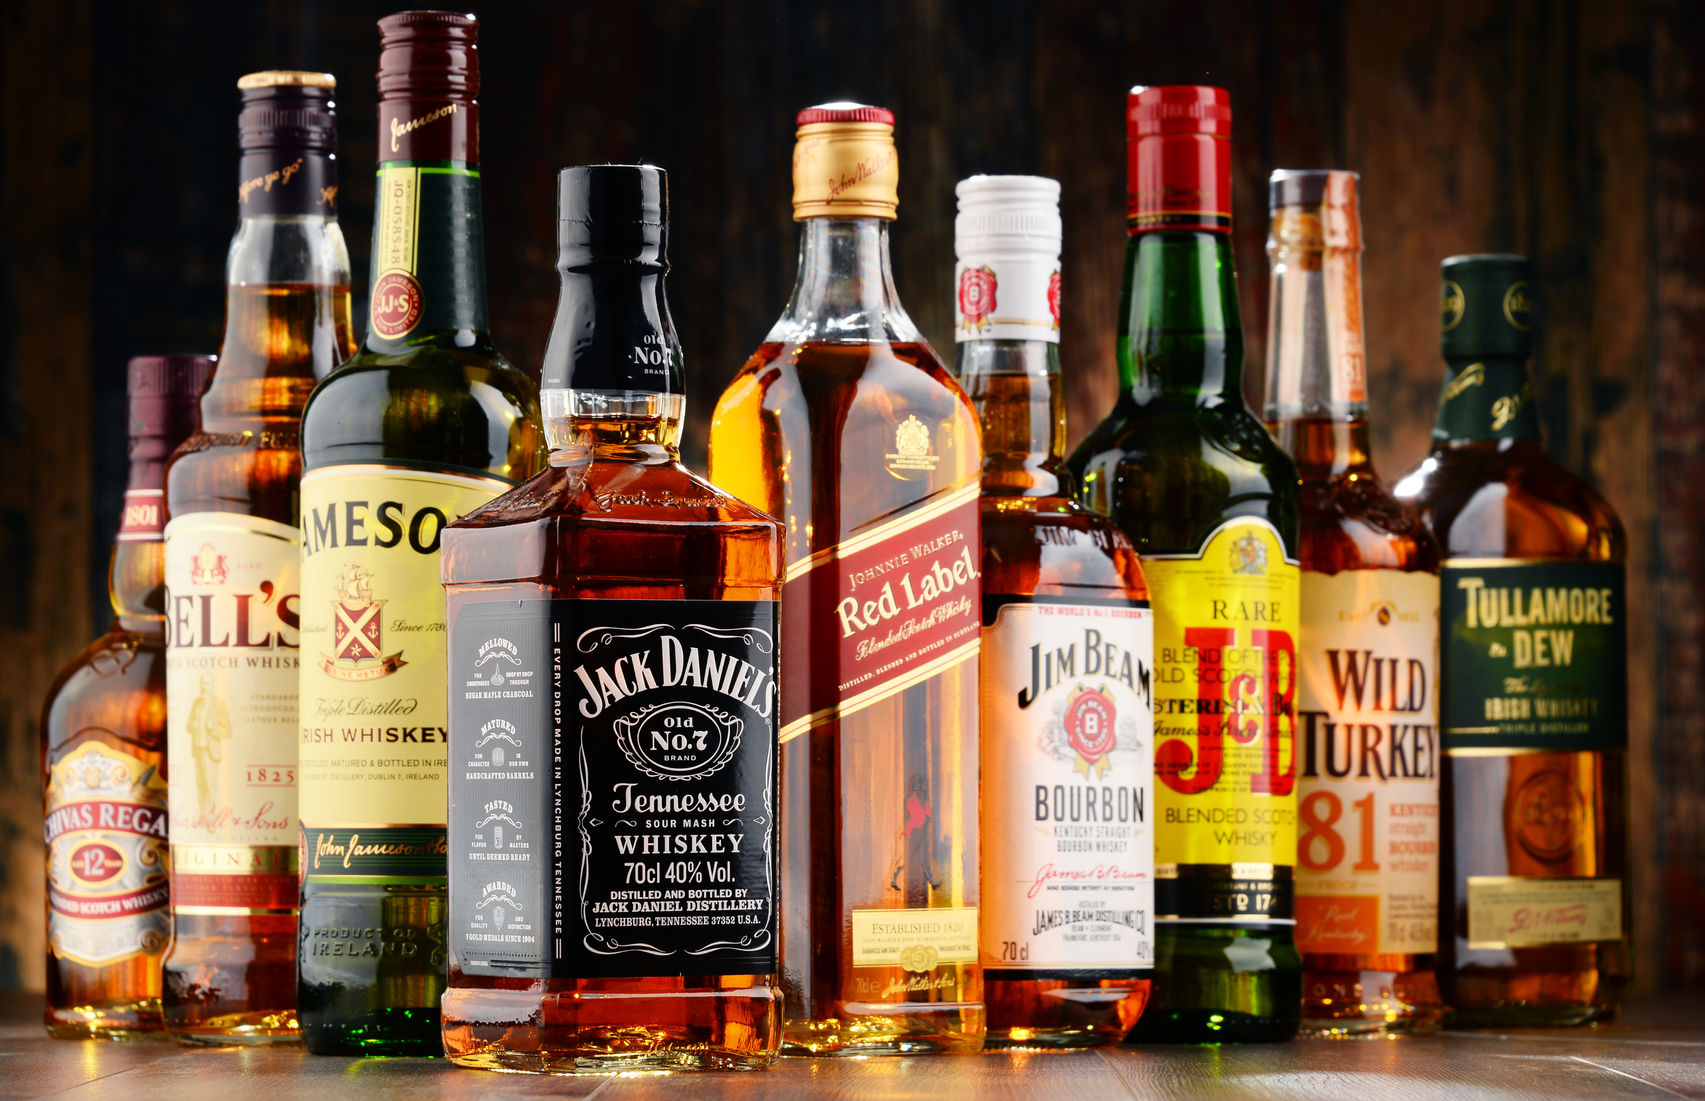 I've always (since I began drinking scotch) had a lively lack of respect for the Johnnie Walker line of blended scotch from Diageo. It represents to me the wrong end of the spectrum between artisanal, hand-crafted, small-batch spirits and factory mass-produced, lowest-bidder, penny-squeezing corporate swill.